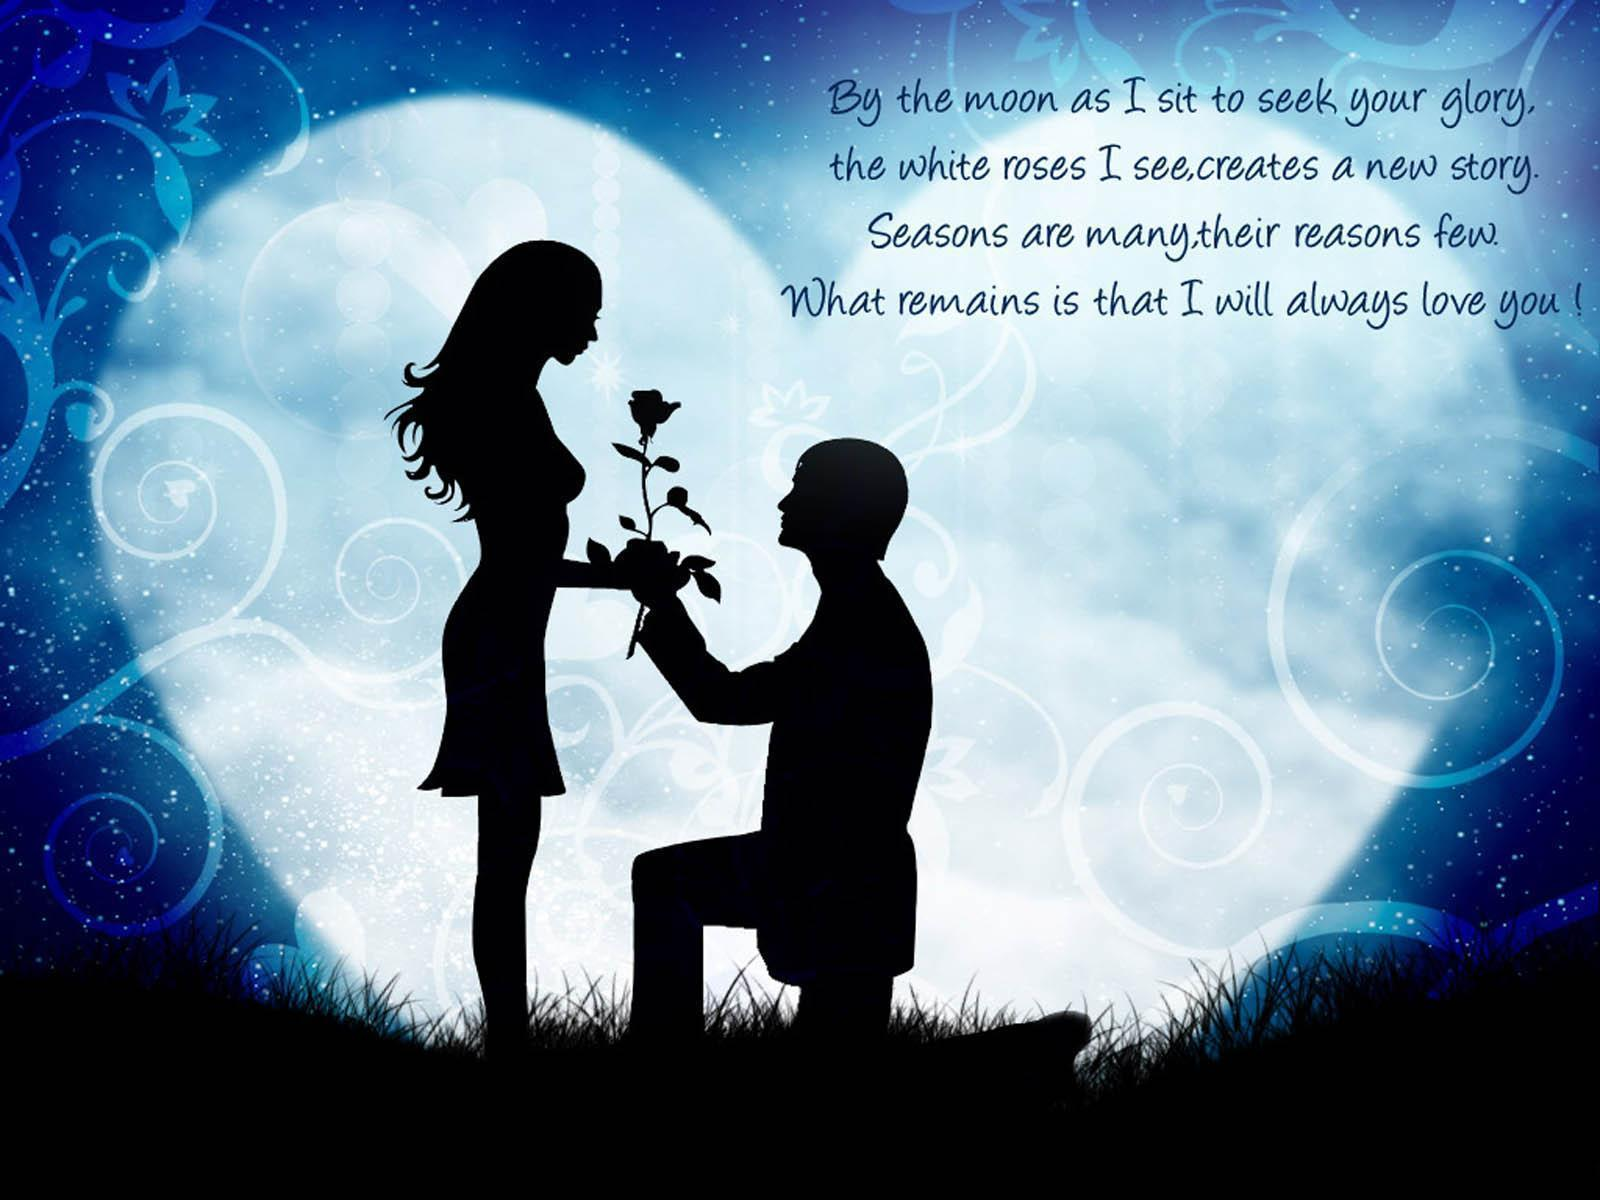 Wallpaper download in love - 15 Meaningful Famous Love Quotes Pictures Hd Love Quotes